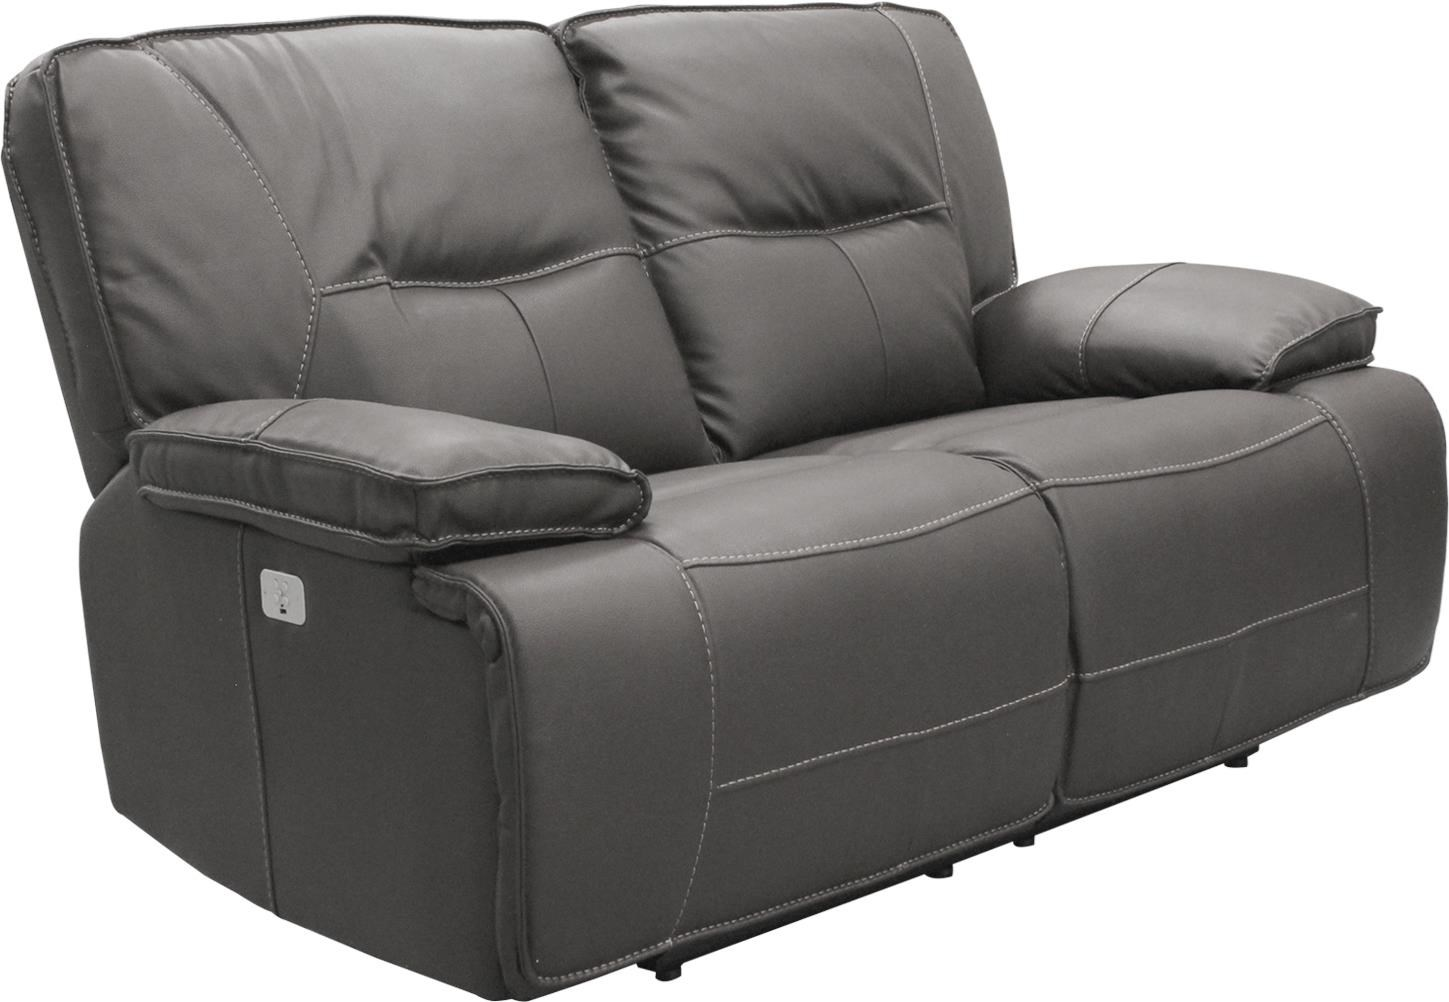 SPARTACUS Power Reclining Loveseat by Parker House at Beck's Furniture